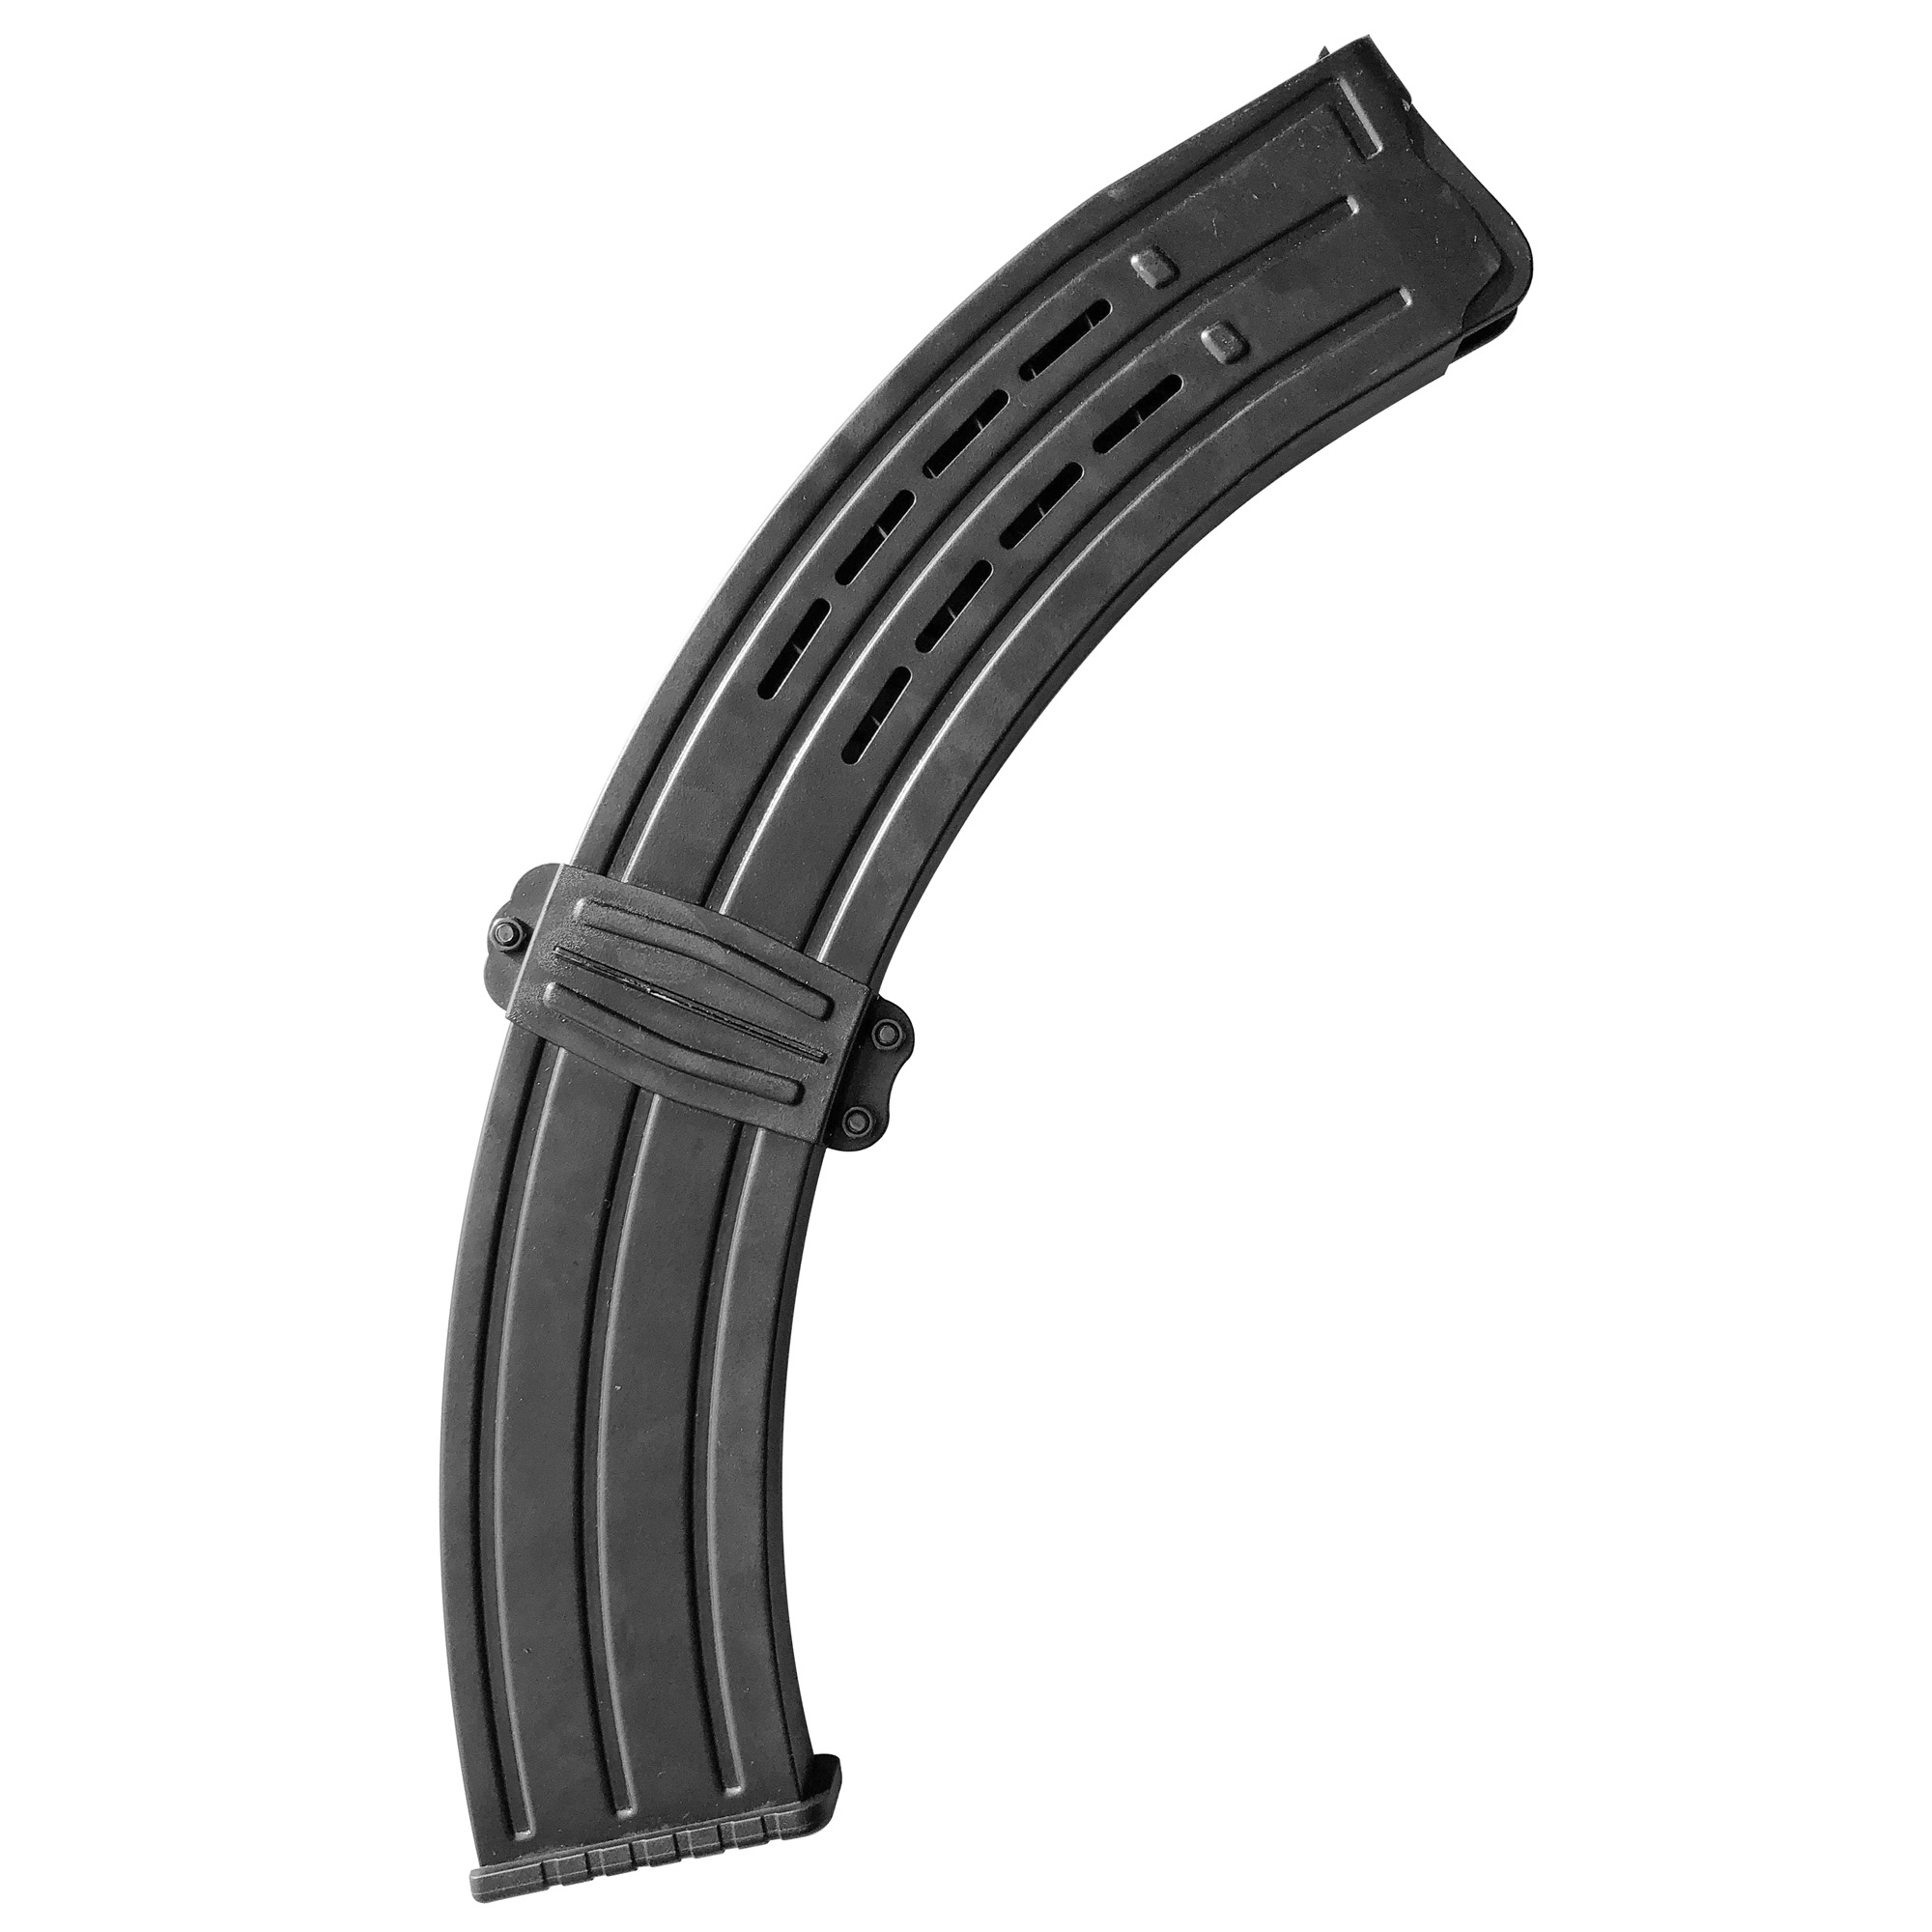 This RIA Imports magazine for VR60/80 and Bull rocket shotguns is a standard factory replacement magazine. This magazine has a 19 round capacity and is chambered in 12GA.